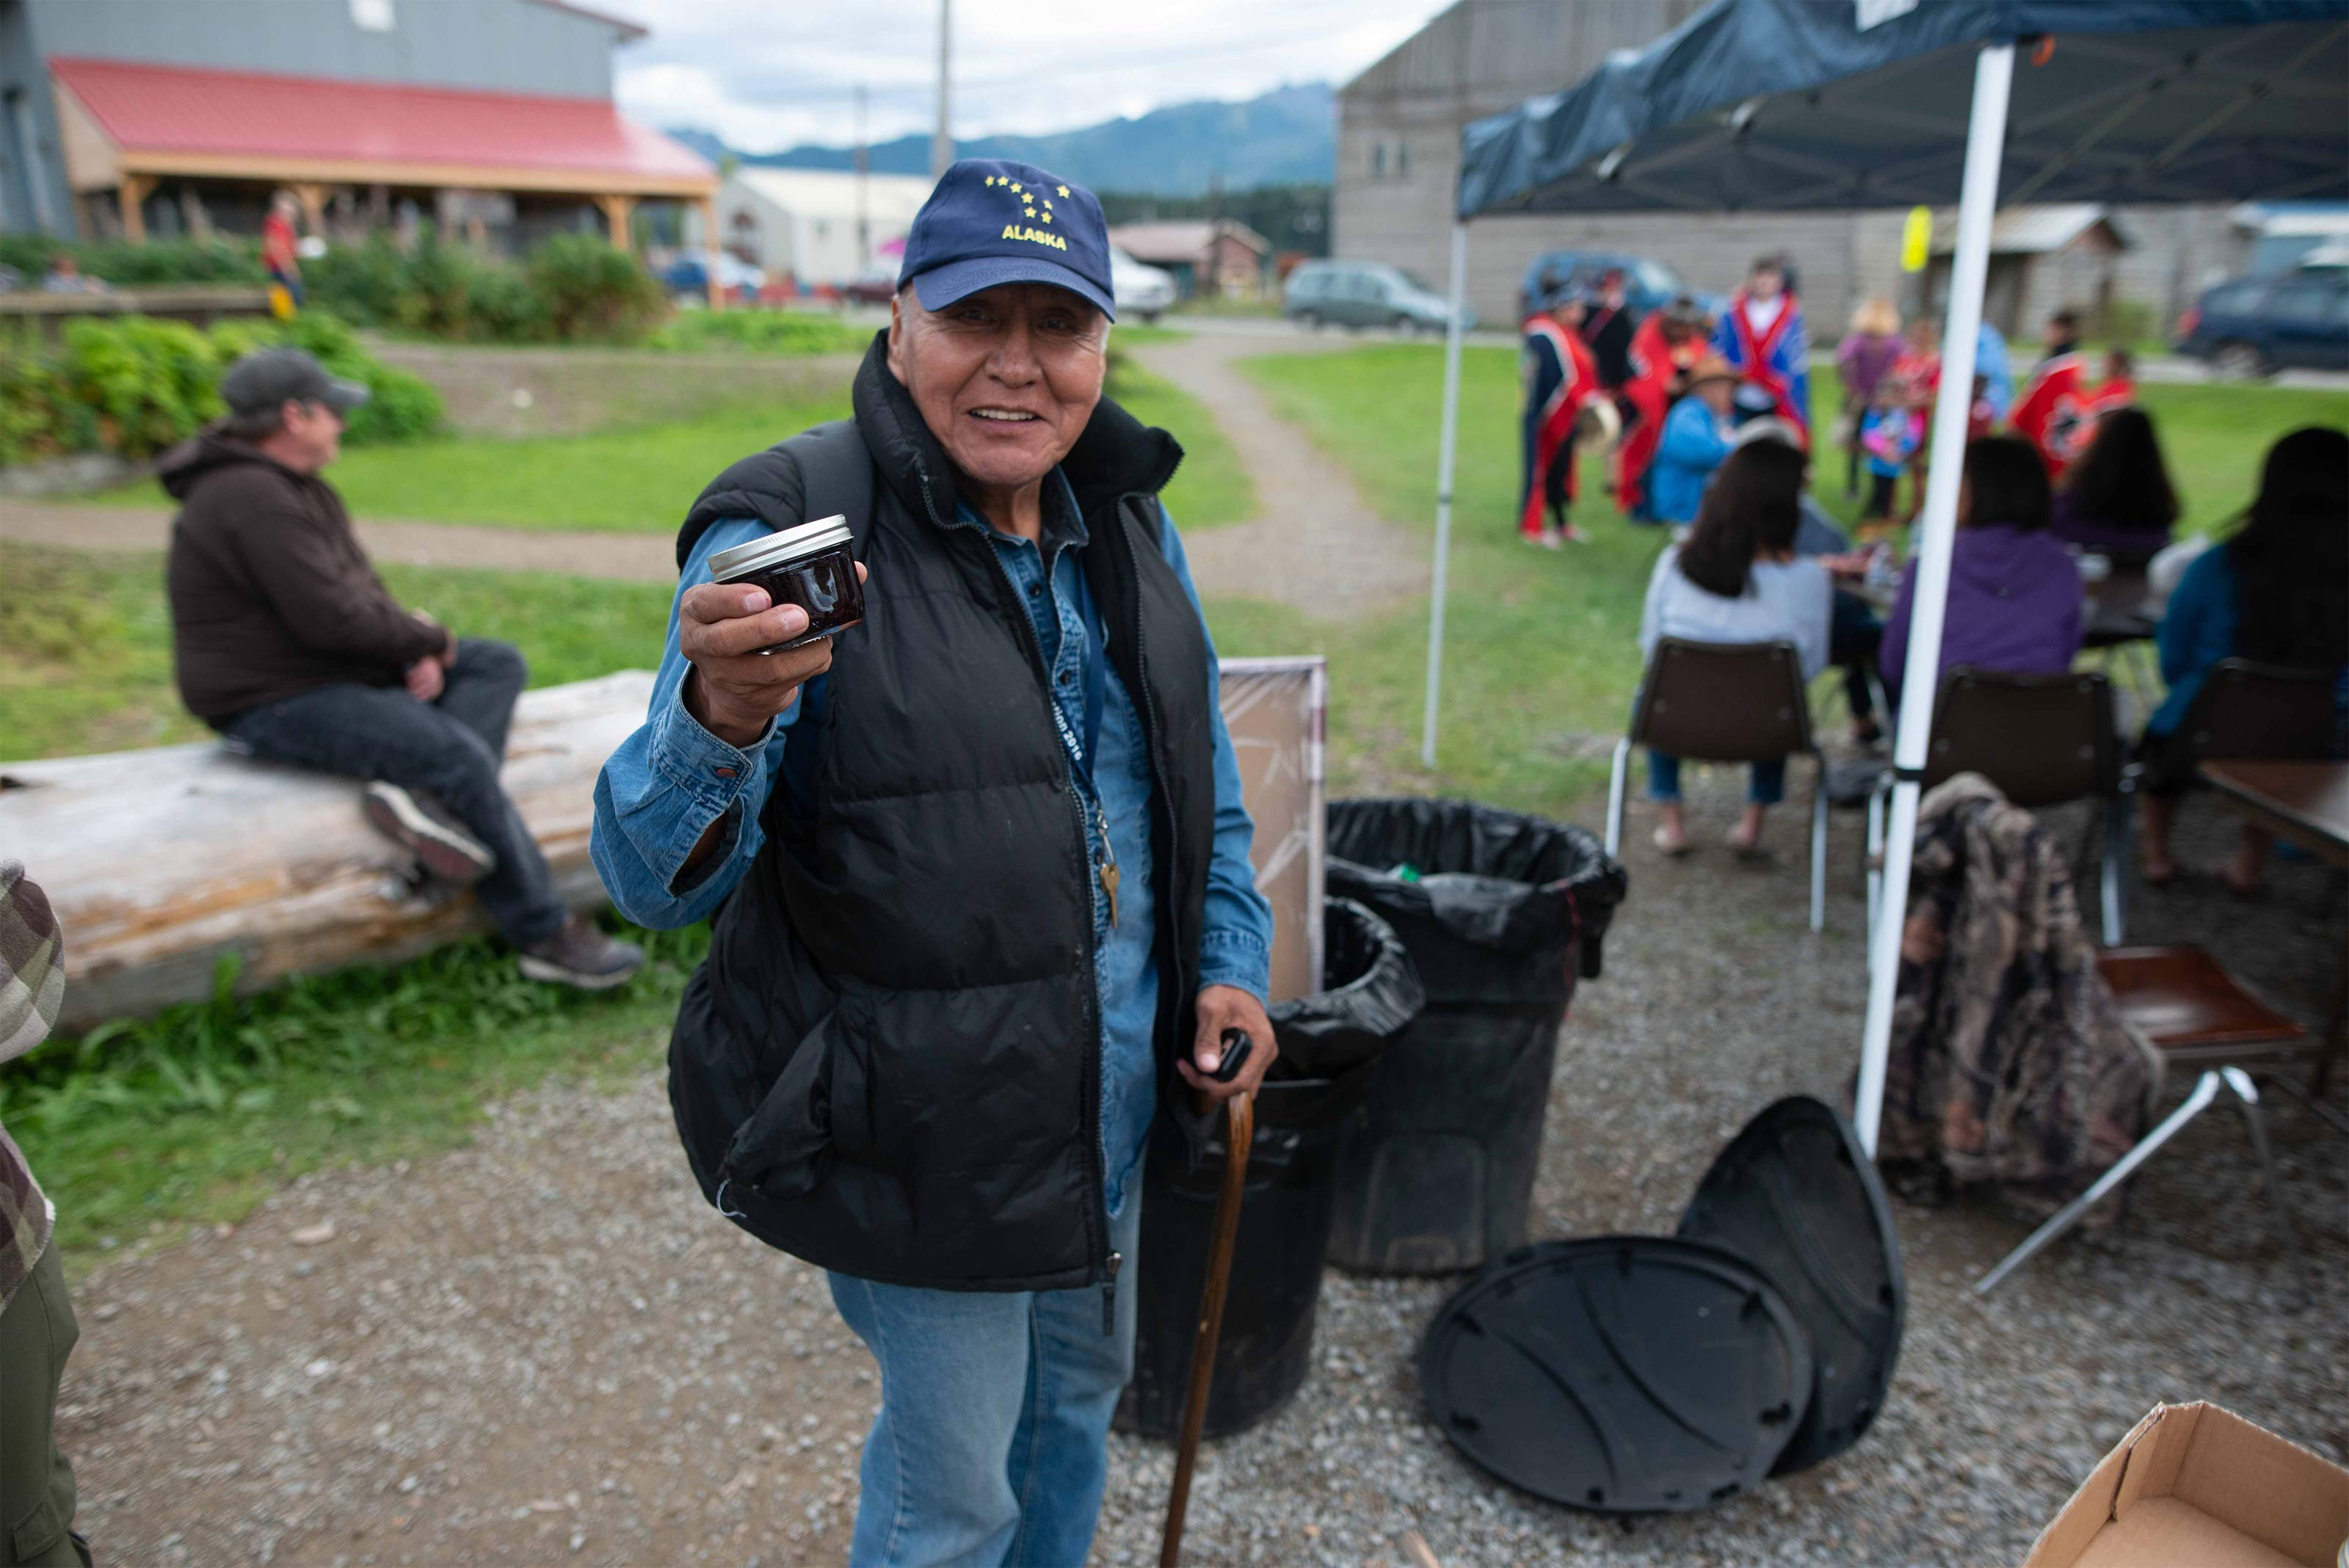 An eldery Tlingit man wearing a blue Alaska hat and a puffy black vest smiles while holding a small jar of blueberry jam.